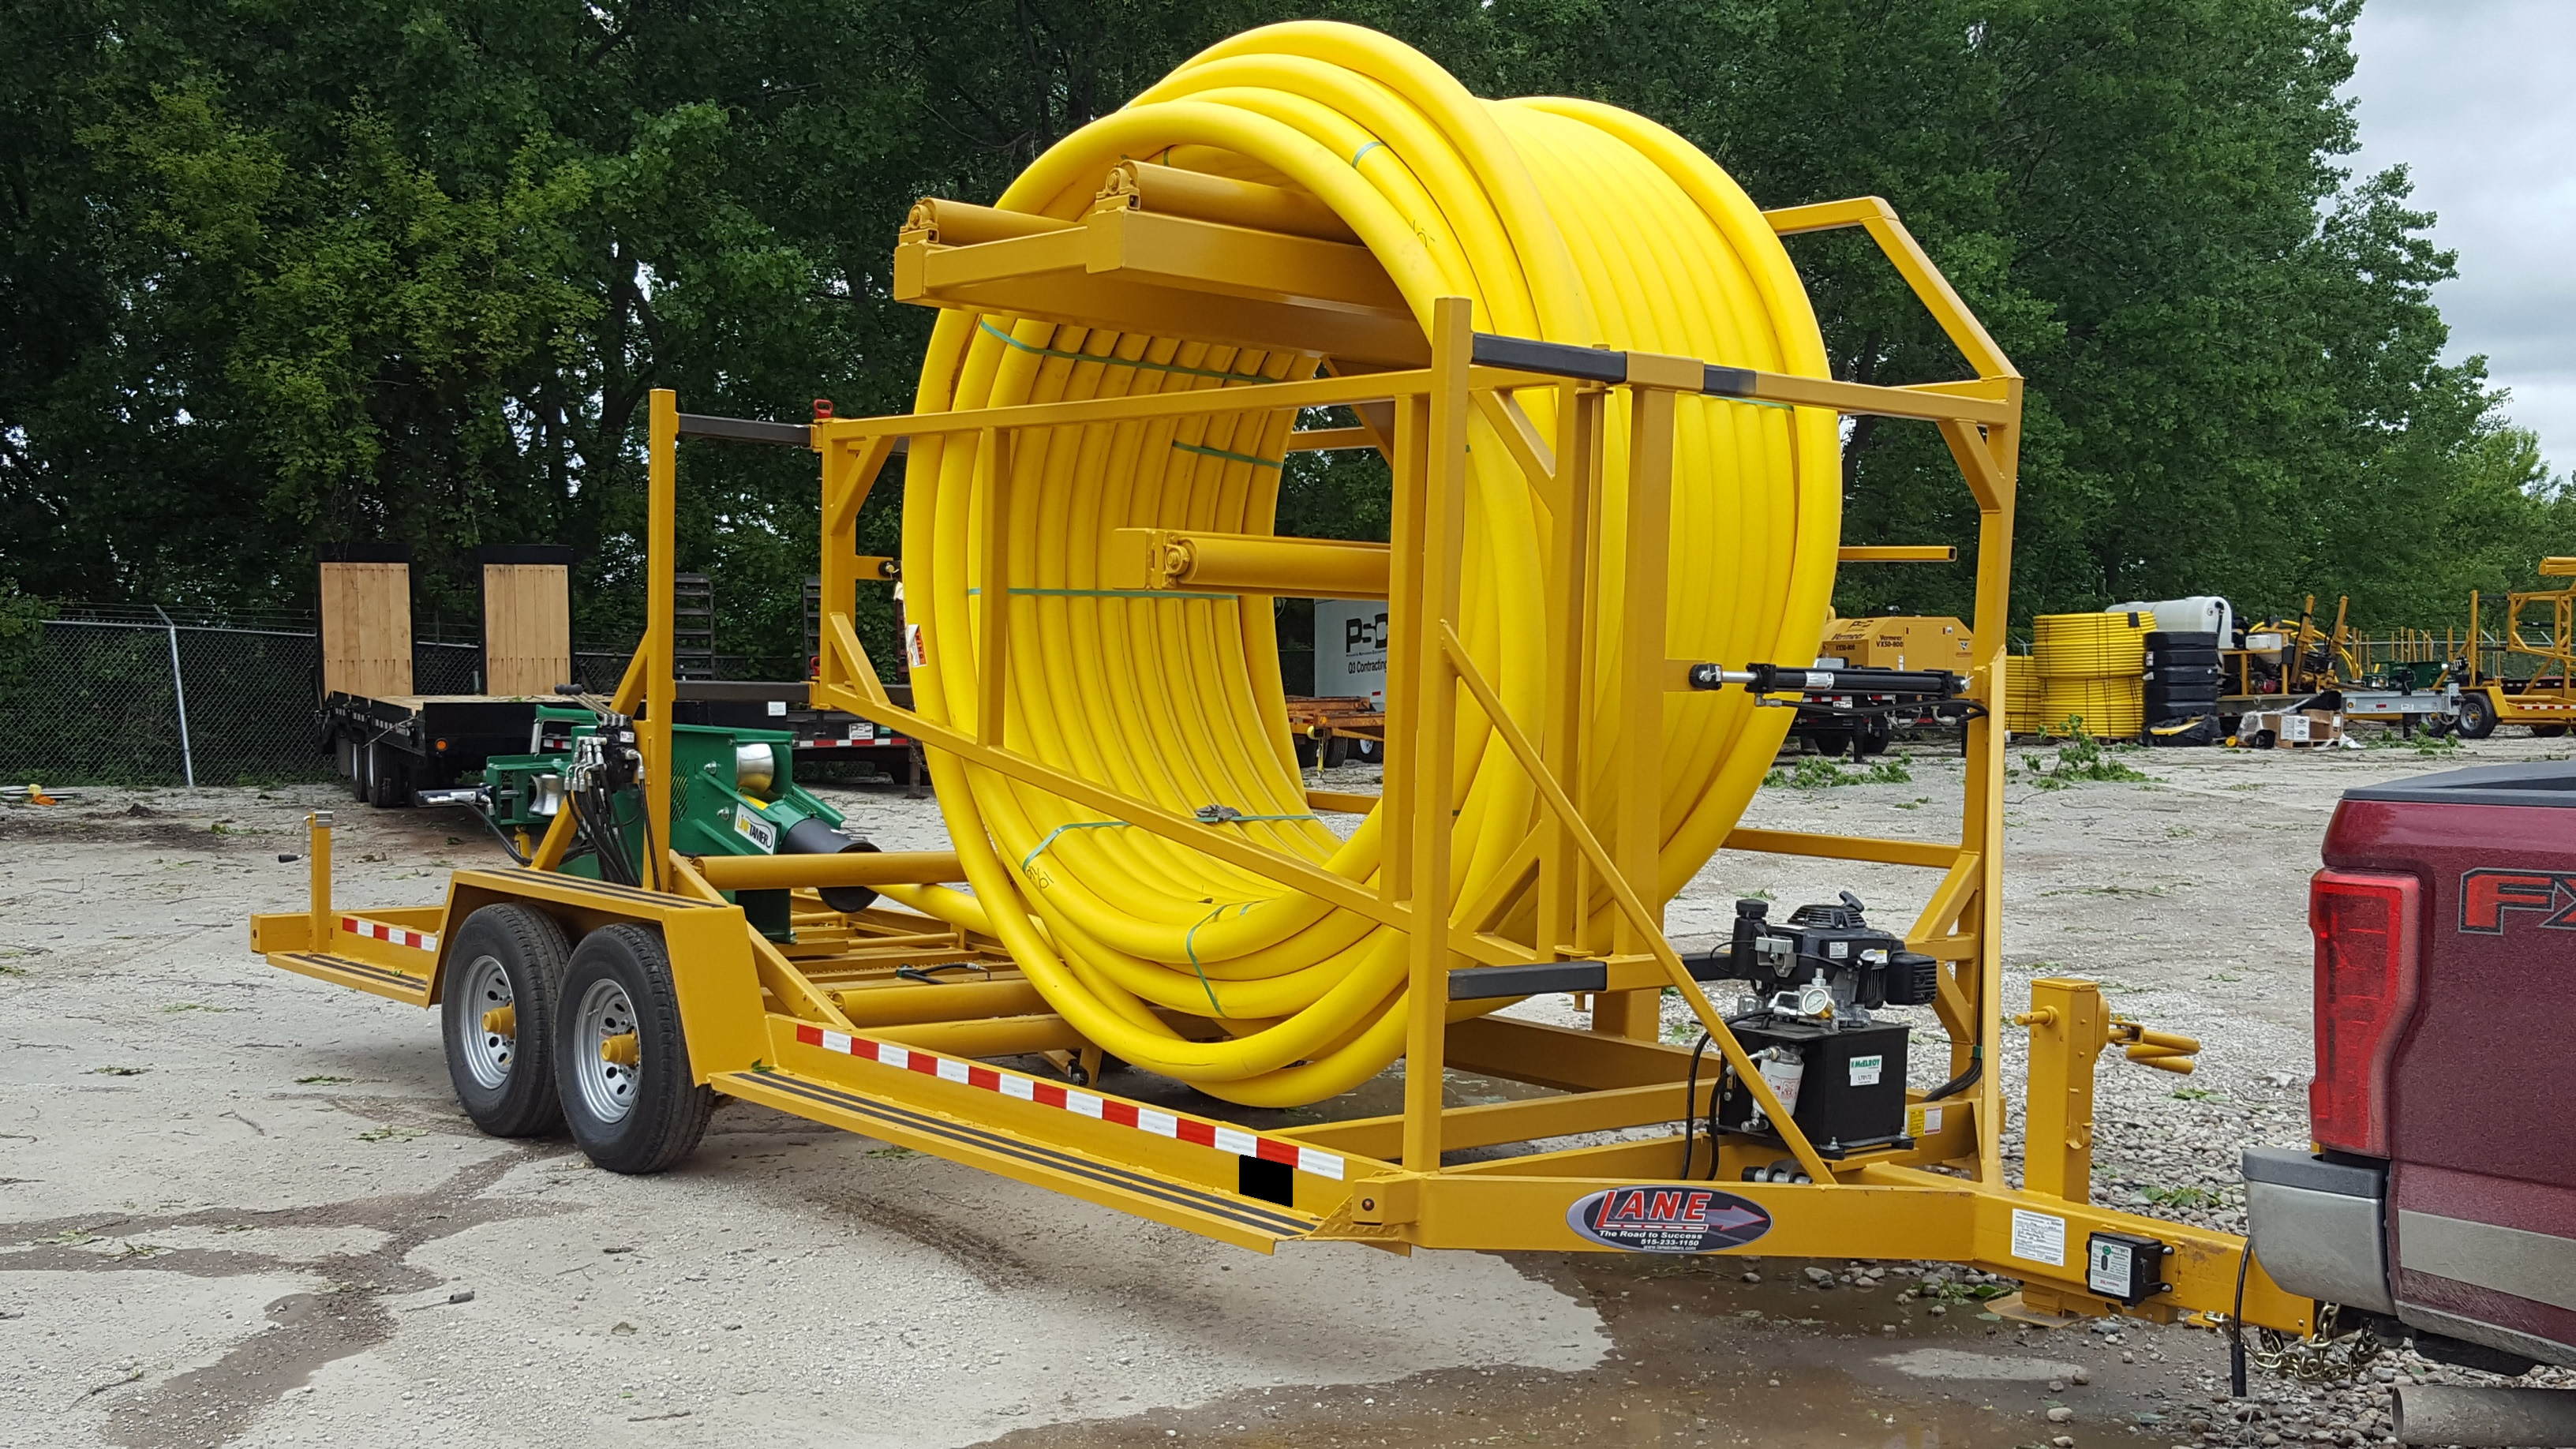 LCV COILED PIPE TRAILER IN USE